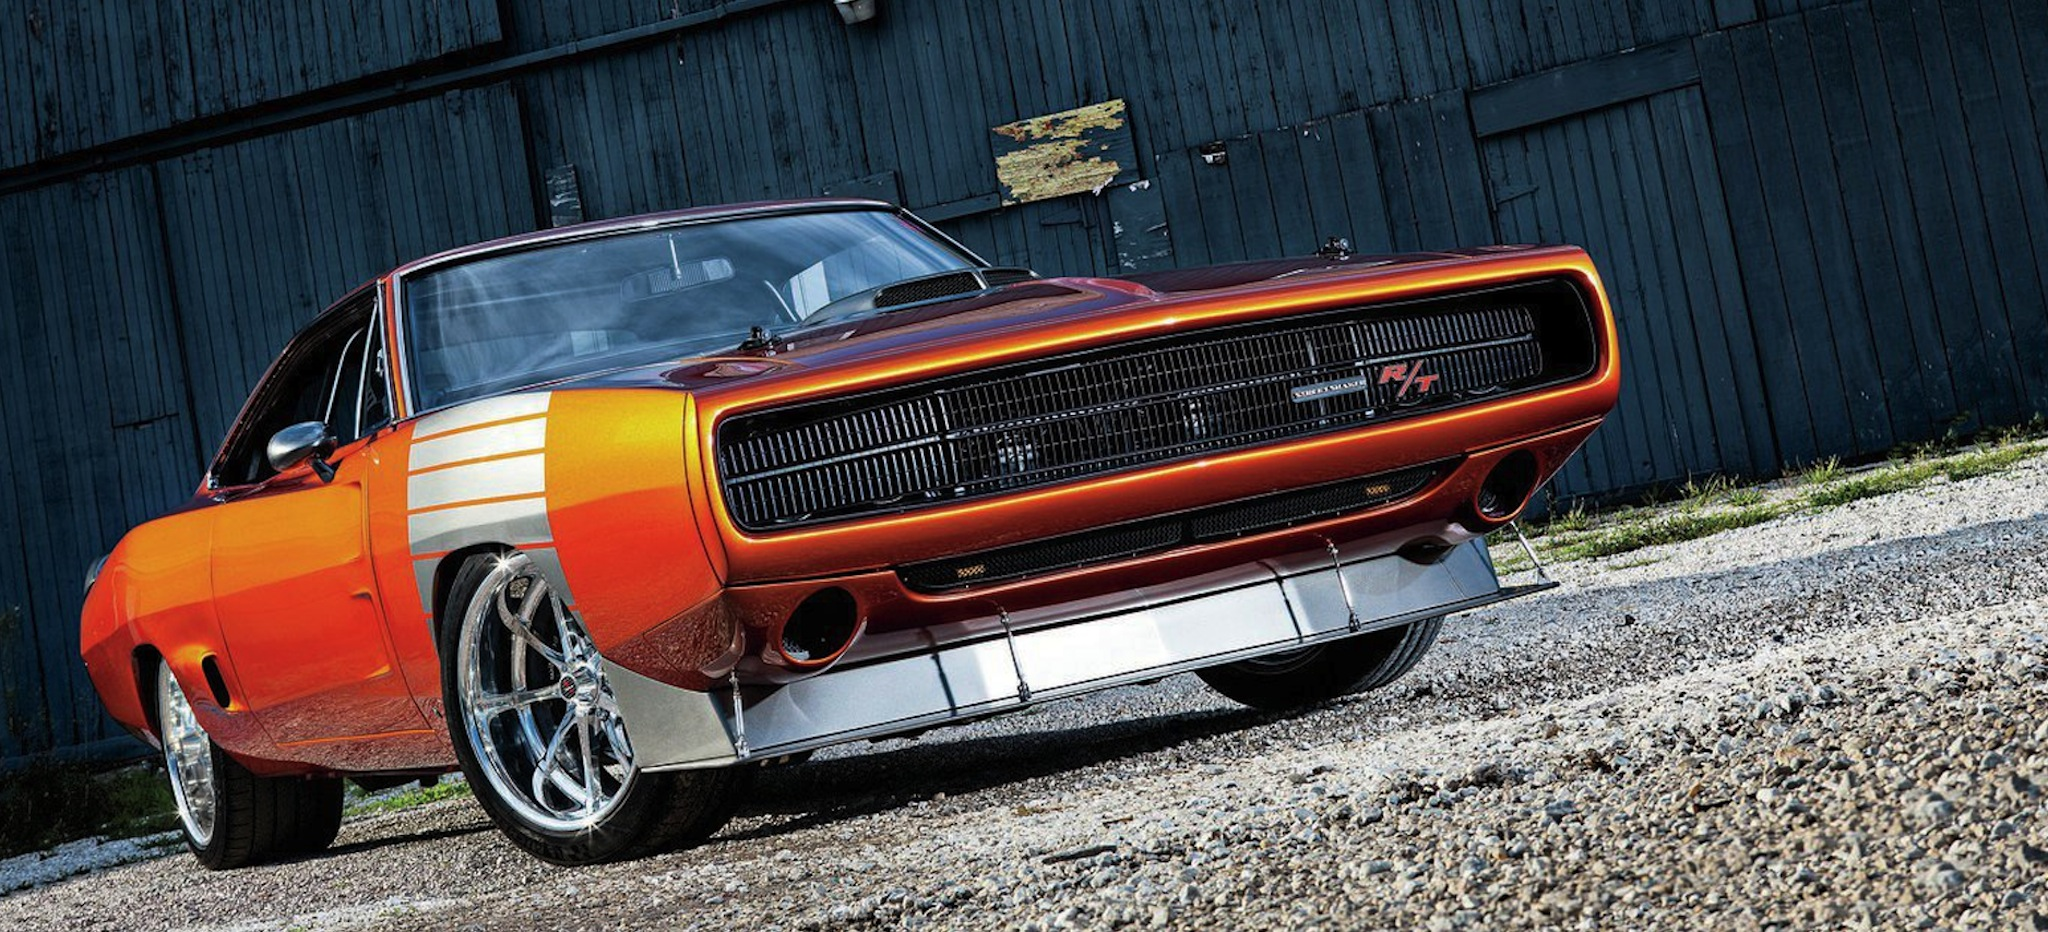 Sports Cars images 1970 Dodge Charger HD wallpaper and background photos